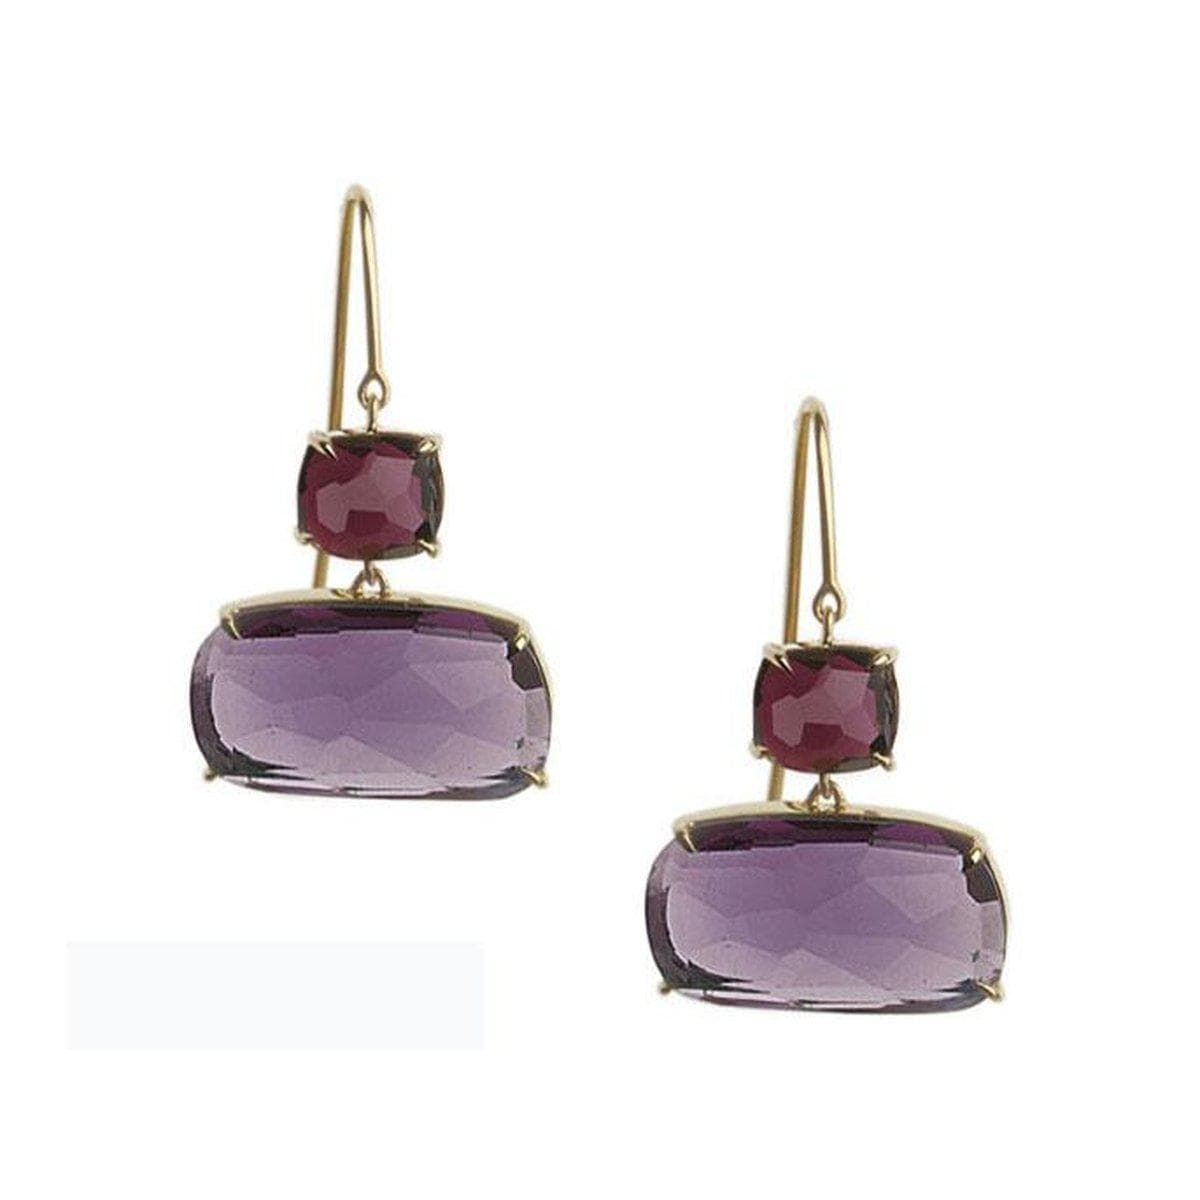 18k Murano Rhodolite Amethyst Earrings - OB1131 MIX89 Y-Marco Bicego-Renee Taylor Gallery